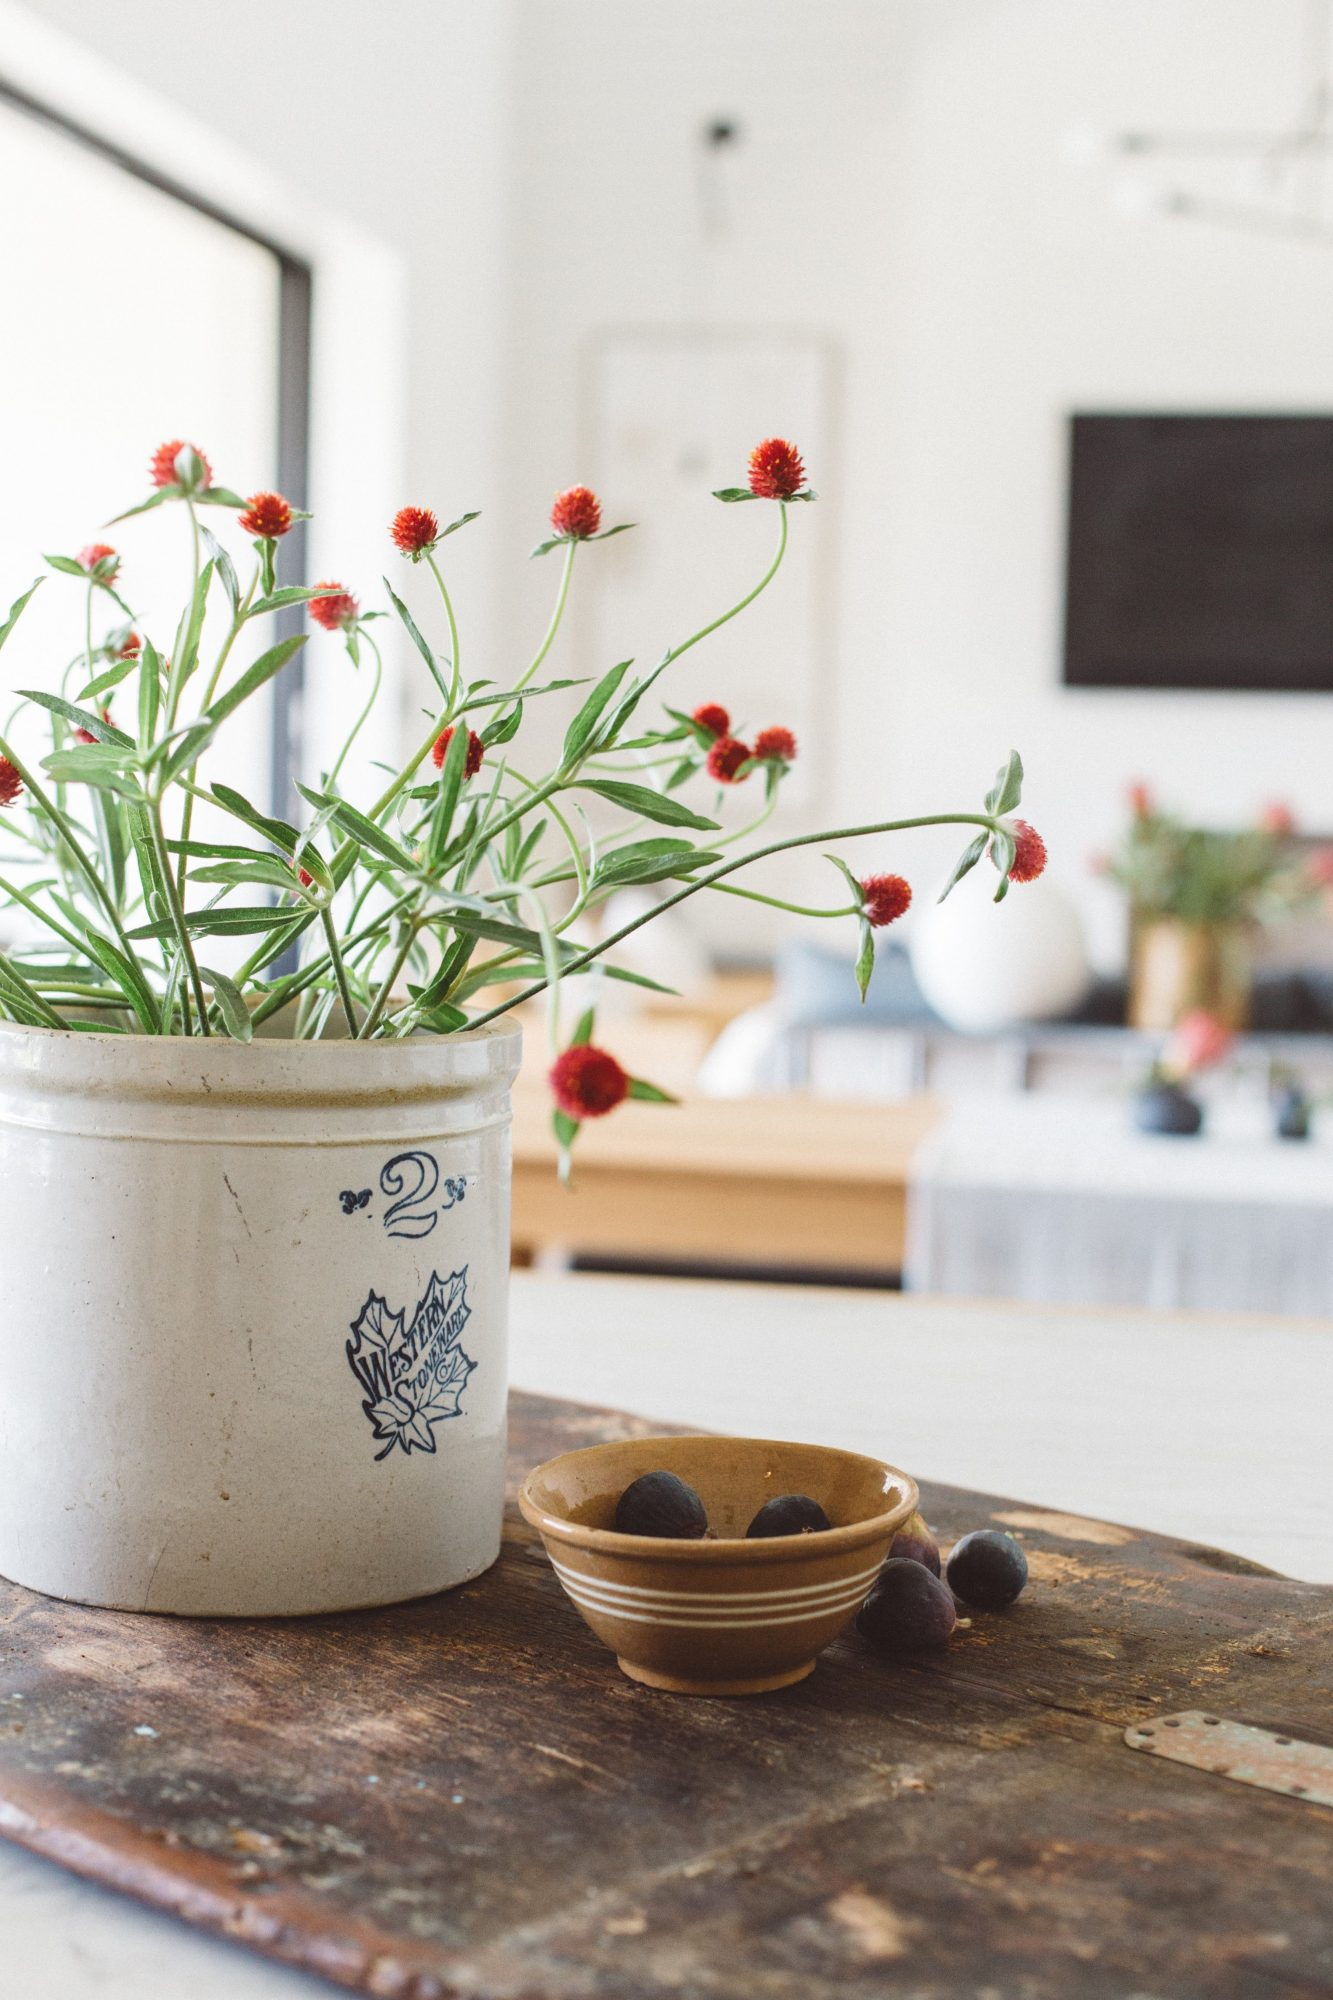 Kitchen Counter Styling Flowers